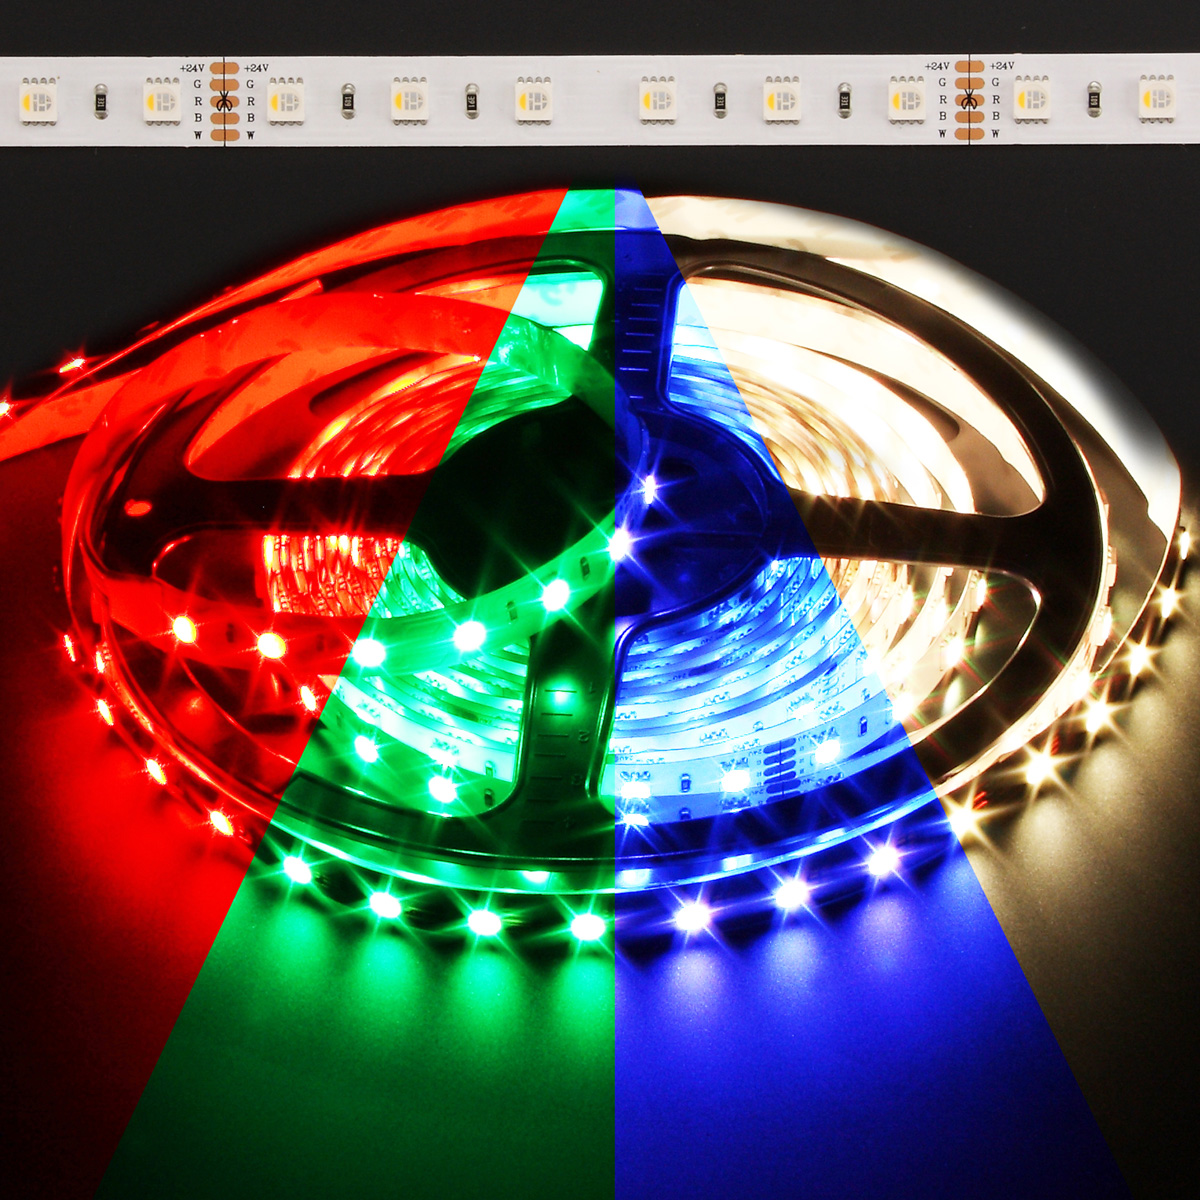 Color Changing Led Light Strips: Color Changing RGB + Warm White Quadchip 5050 72W LED